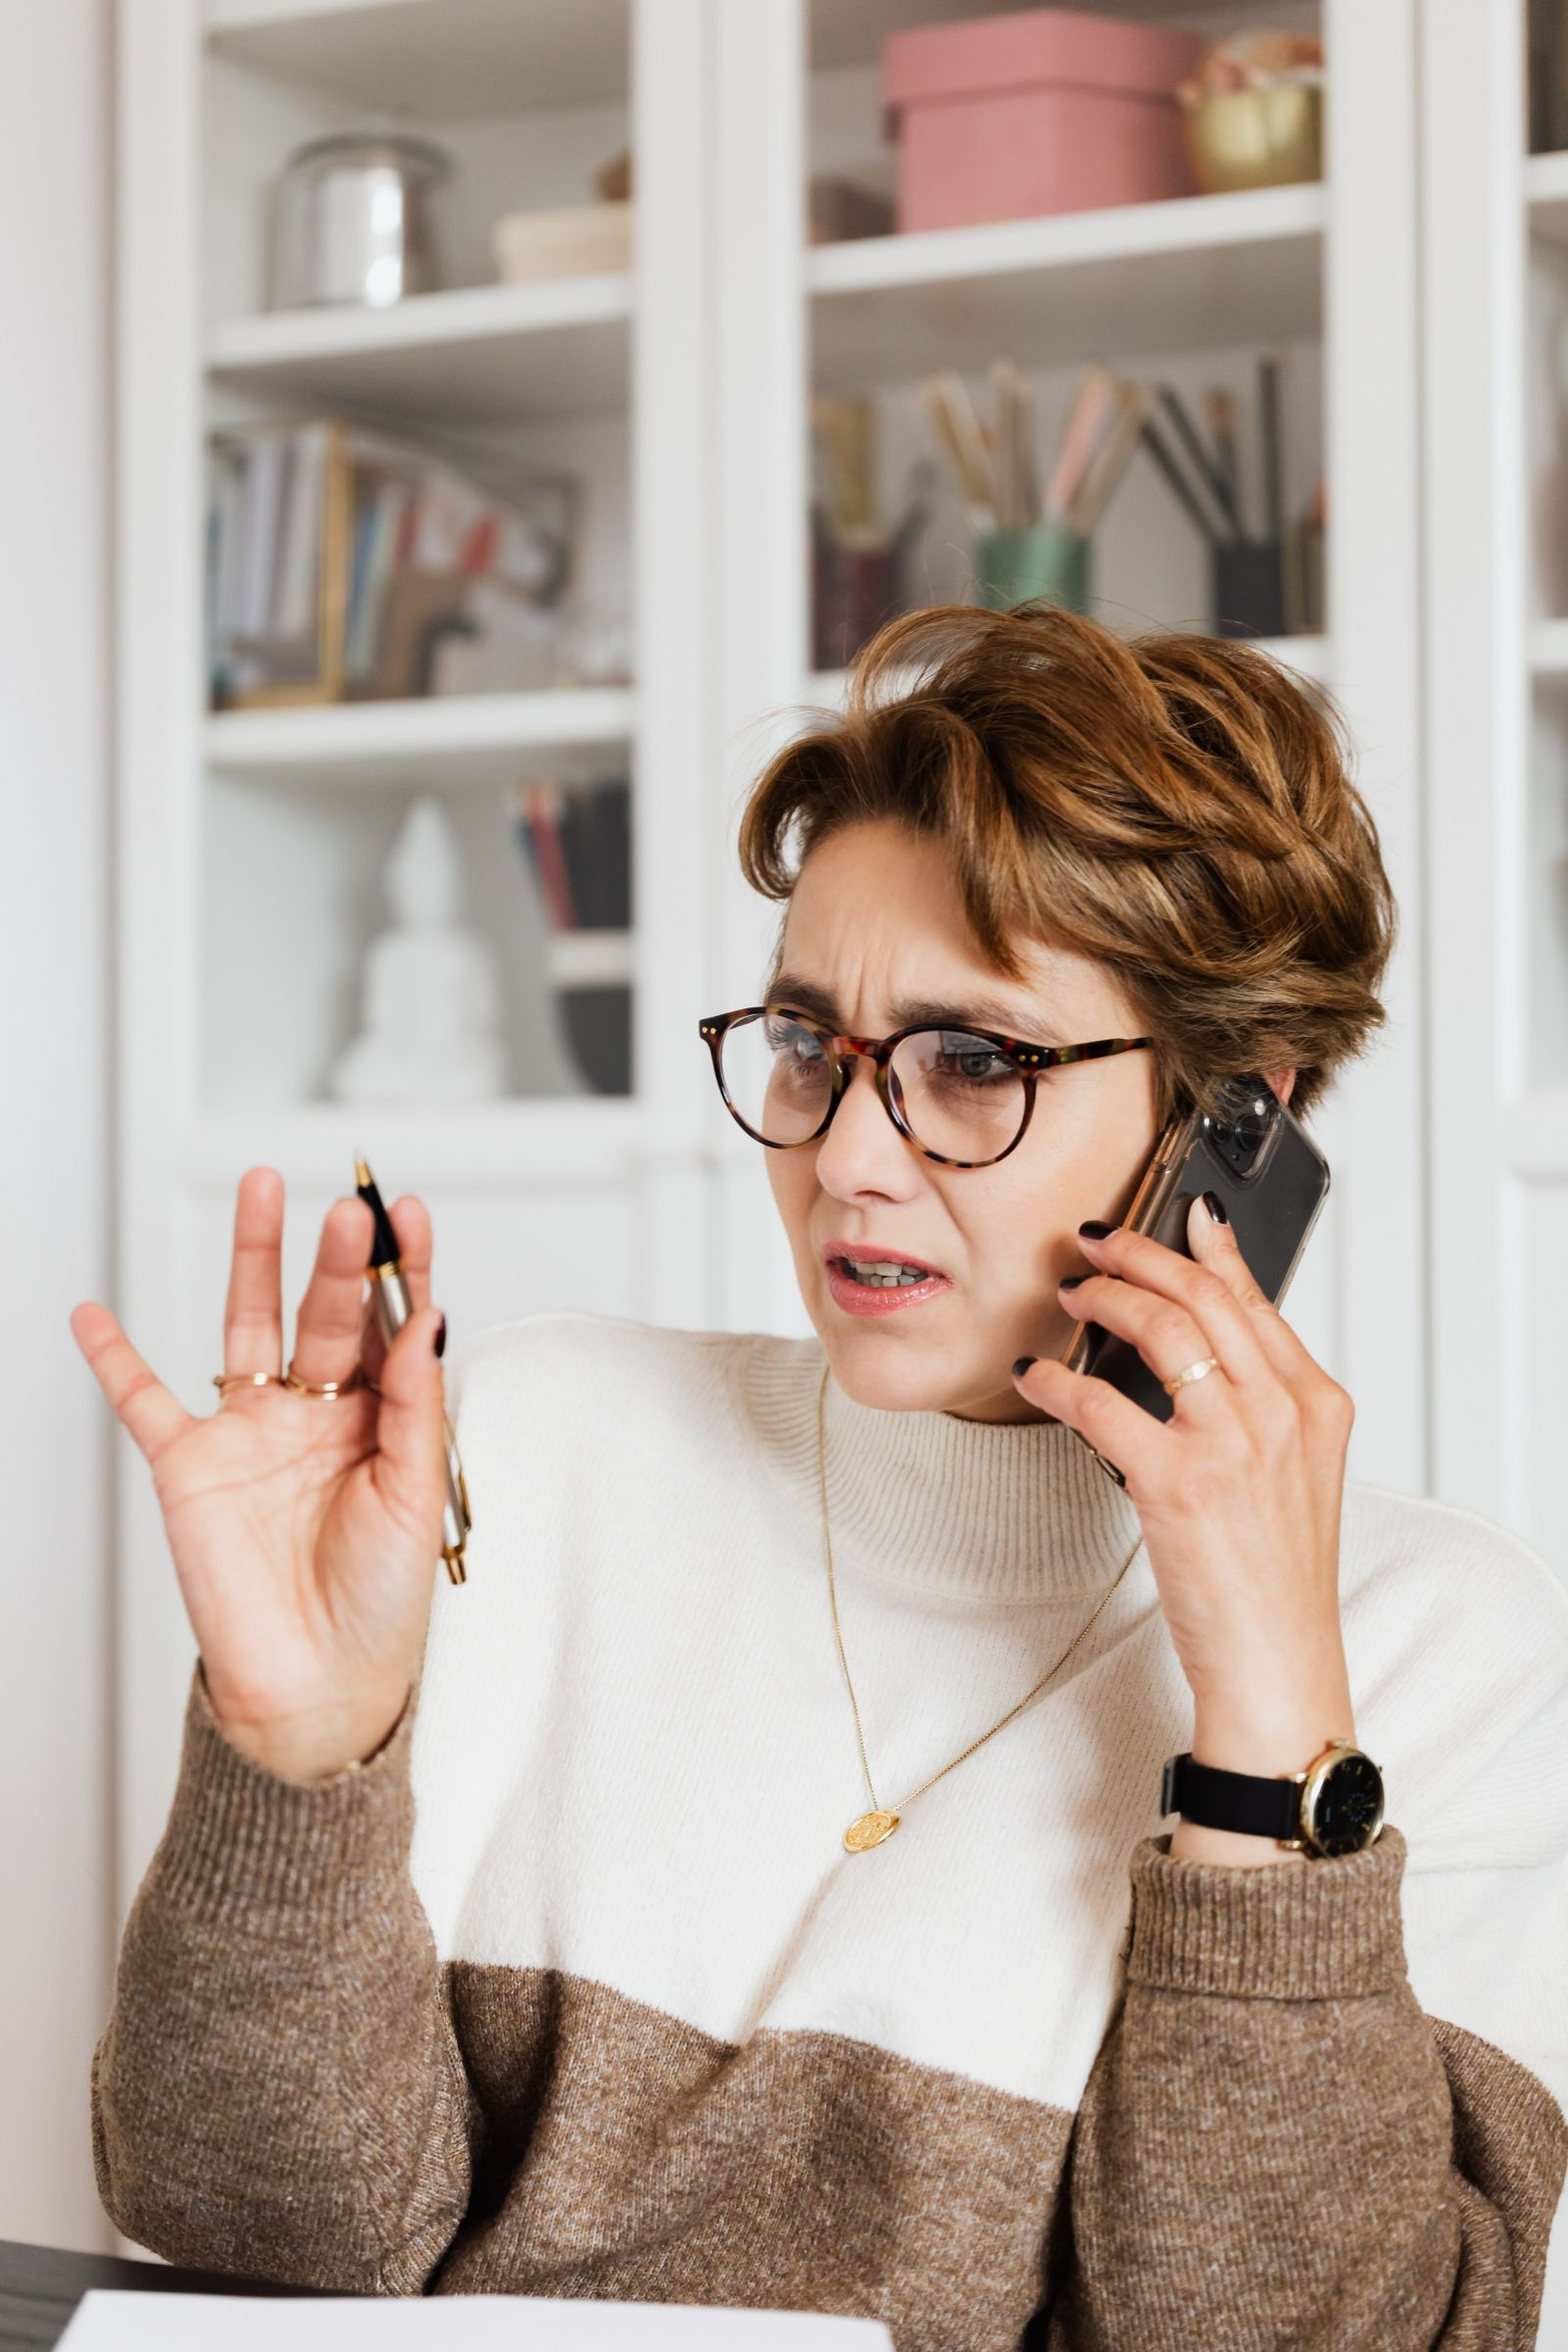 Woman on phone banner image